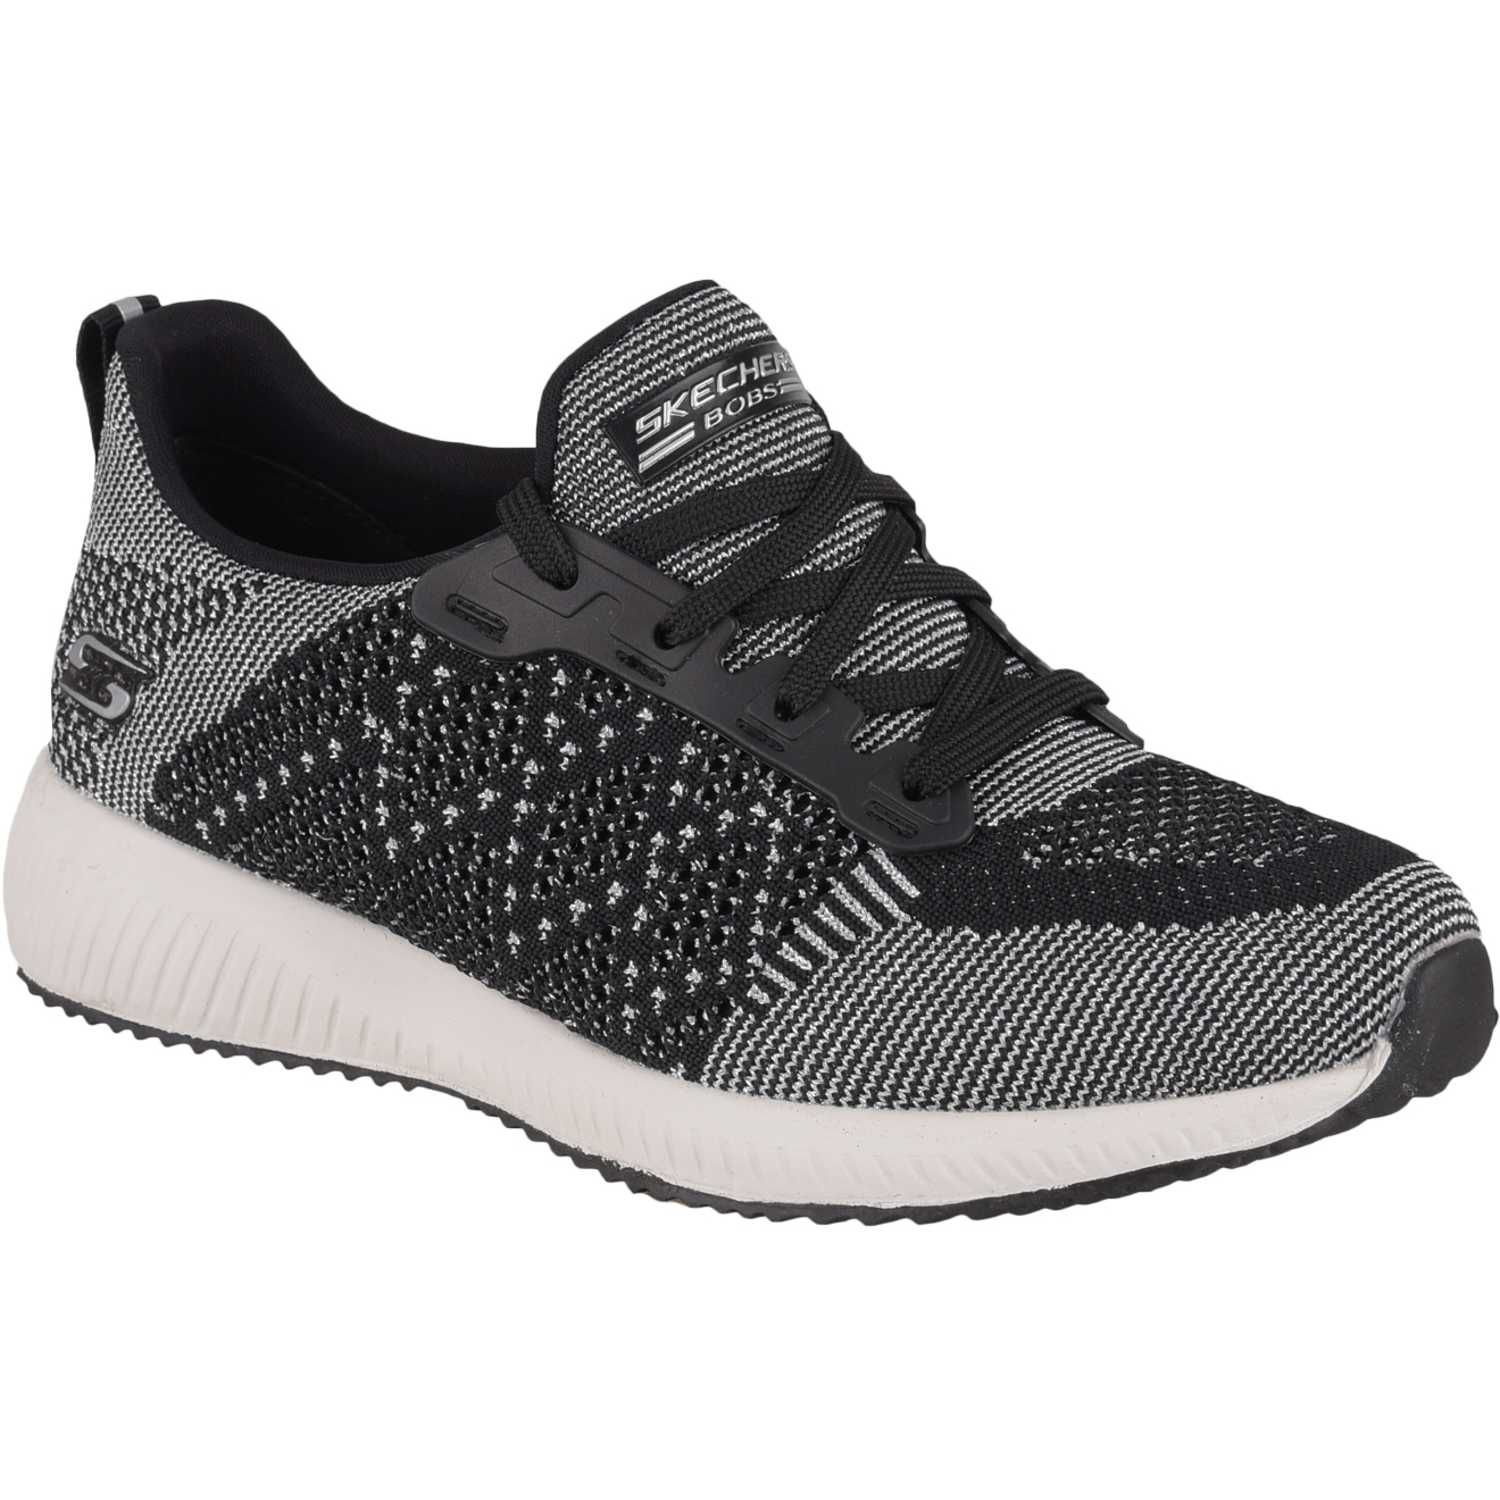 Casual de Mujer Skechers Negro / blanco bobs squad - hot spark